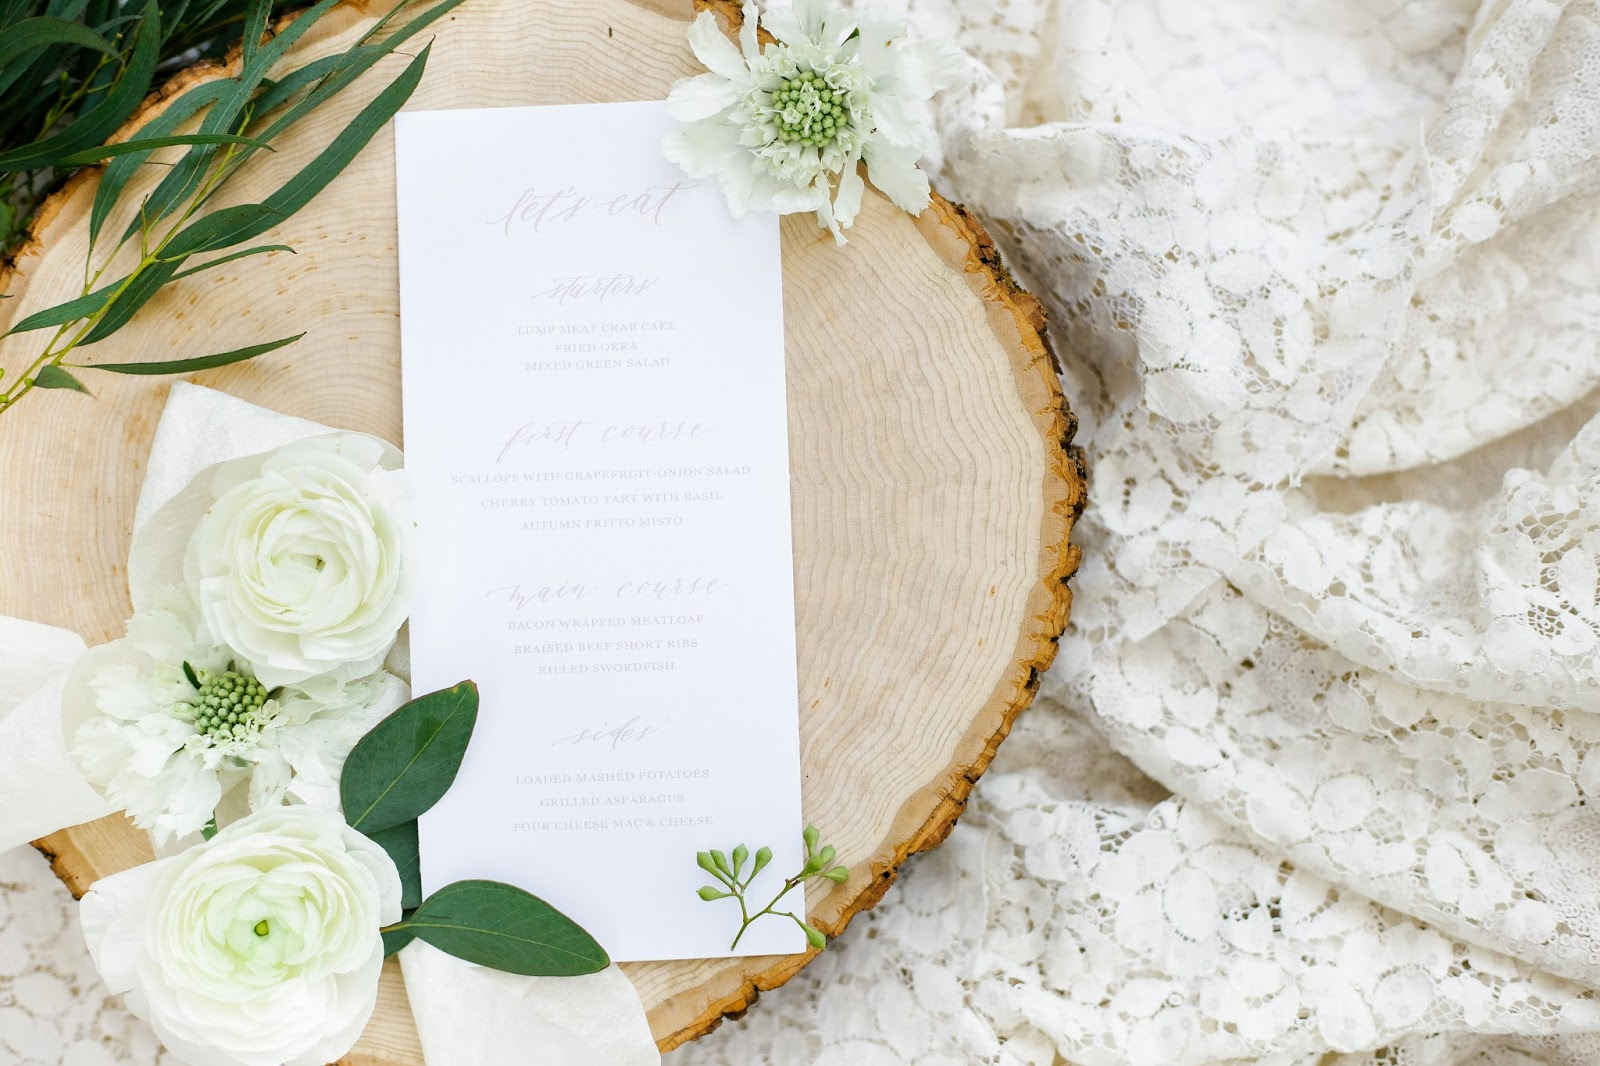 Tuscan Inspired Wedding Menu